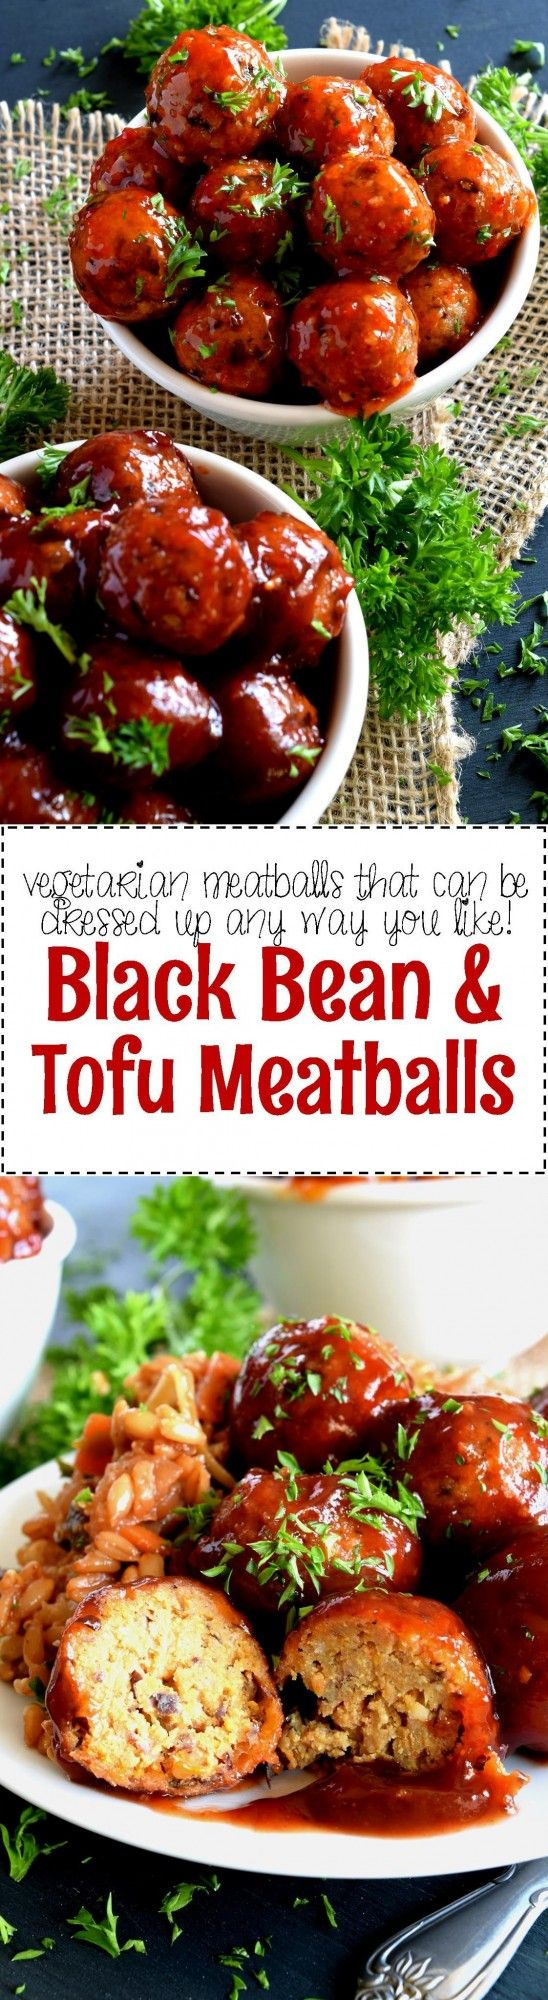 Black Bean and Tofu Meatballs are moist, flavourful, and completely vegetarian!  Seasoned with familiar herbs and spices, and tossed in the sauce of your choice, these meatballs aim to please, and they do just that!